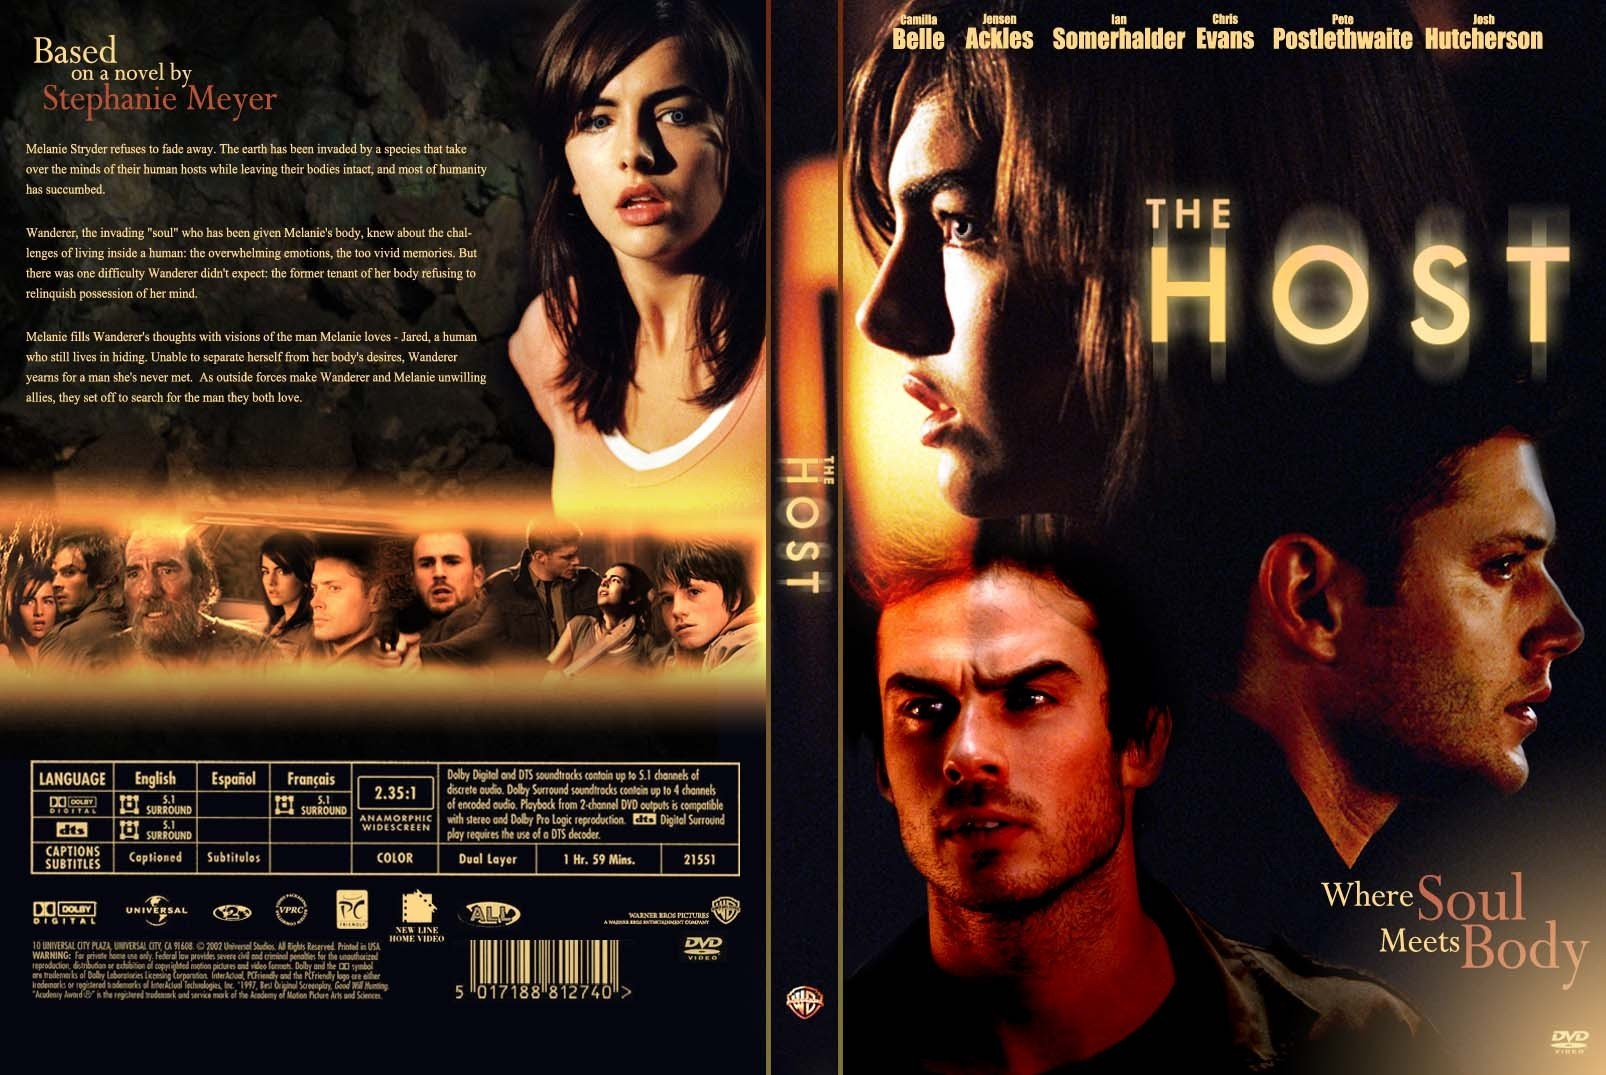 The Host - DVD Cover - The Host Photo (14869765) - Fanpop